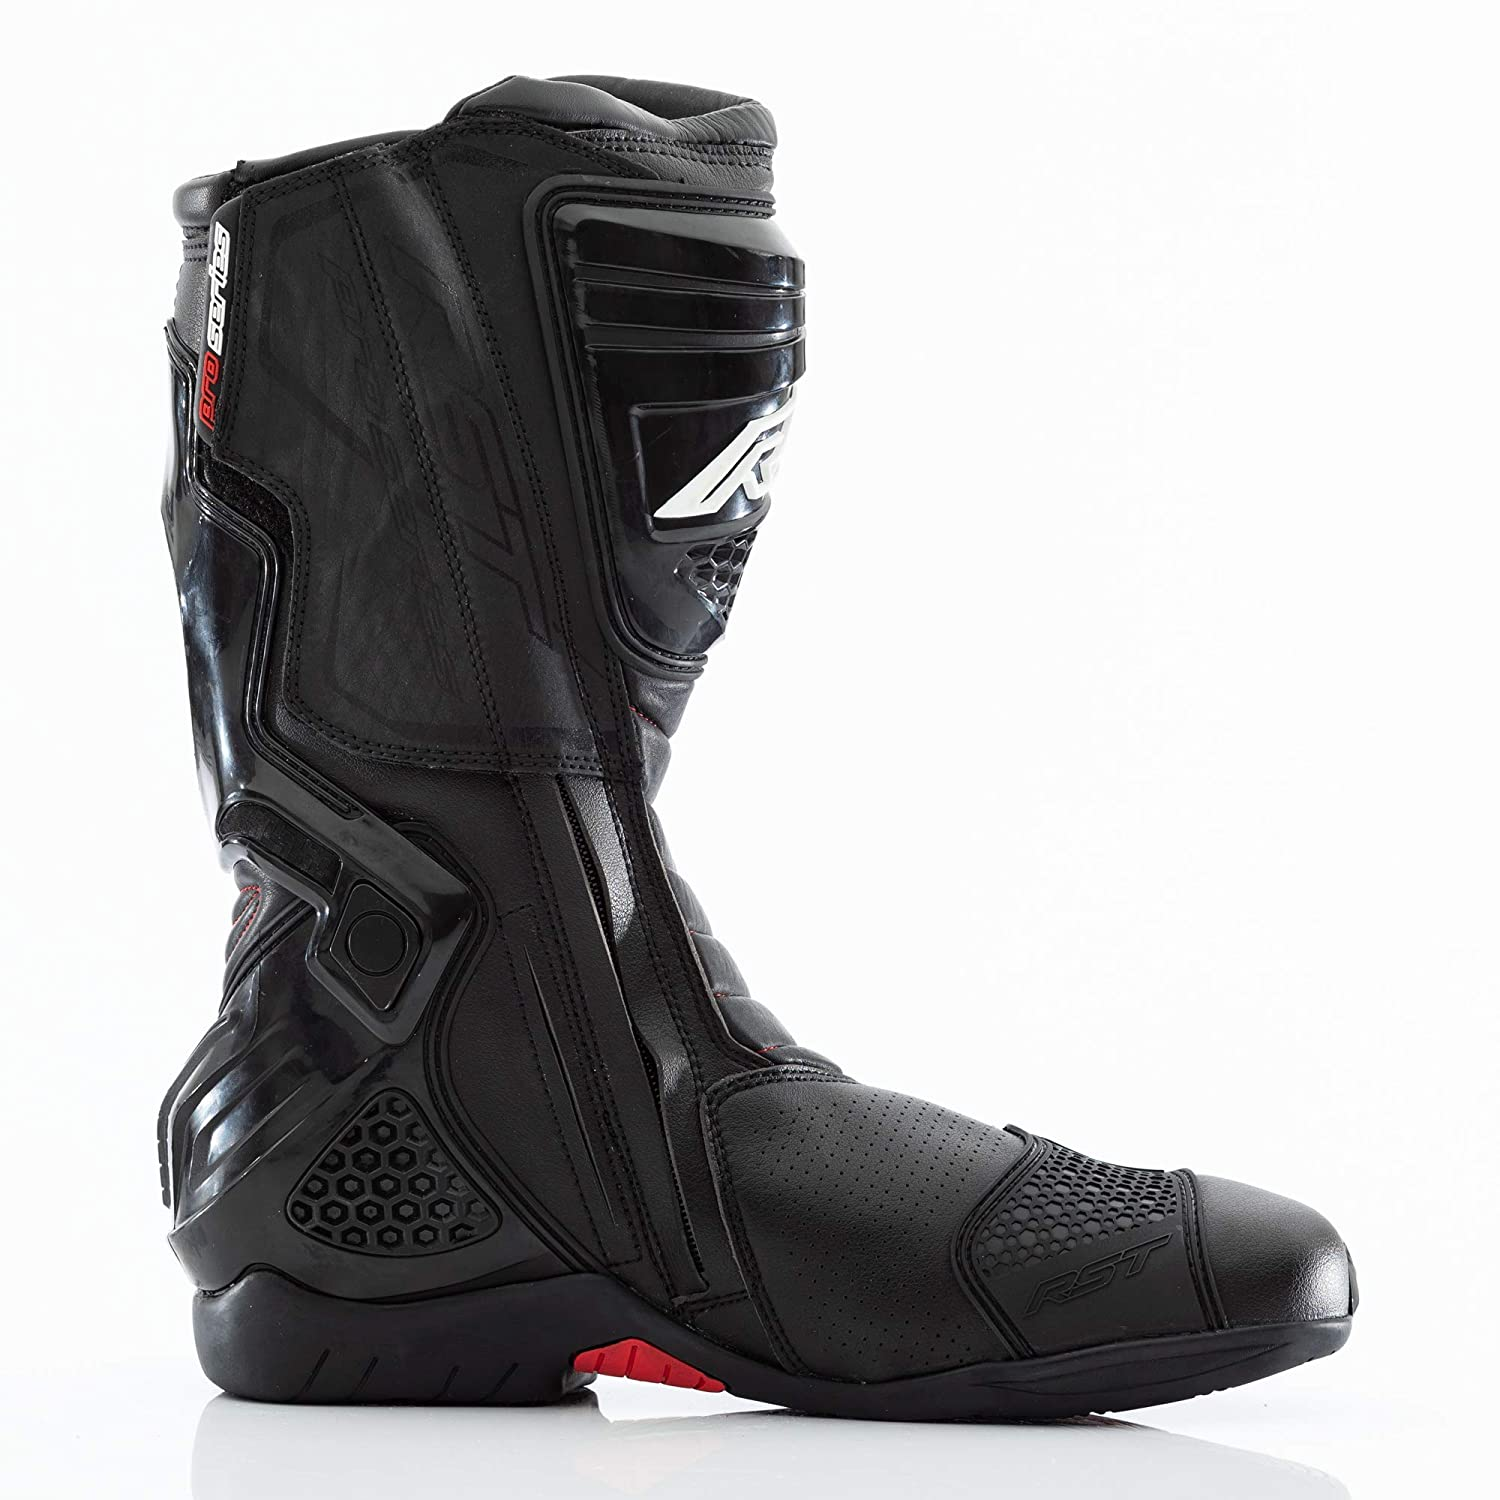 RST PRO SERIES 1503 RACE CE BOOT F.RED//WH//BLK 45 10.5